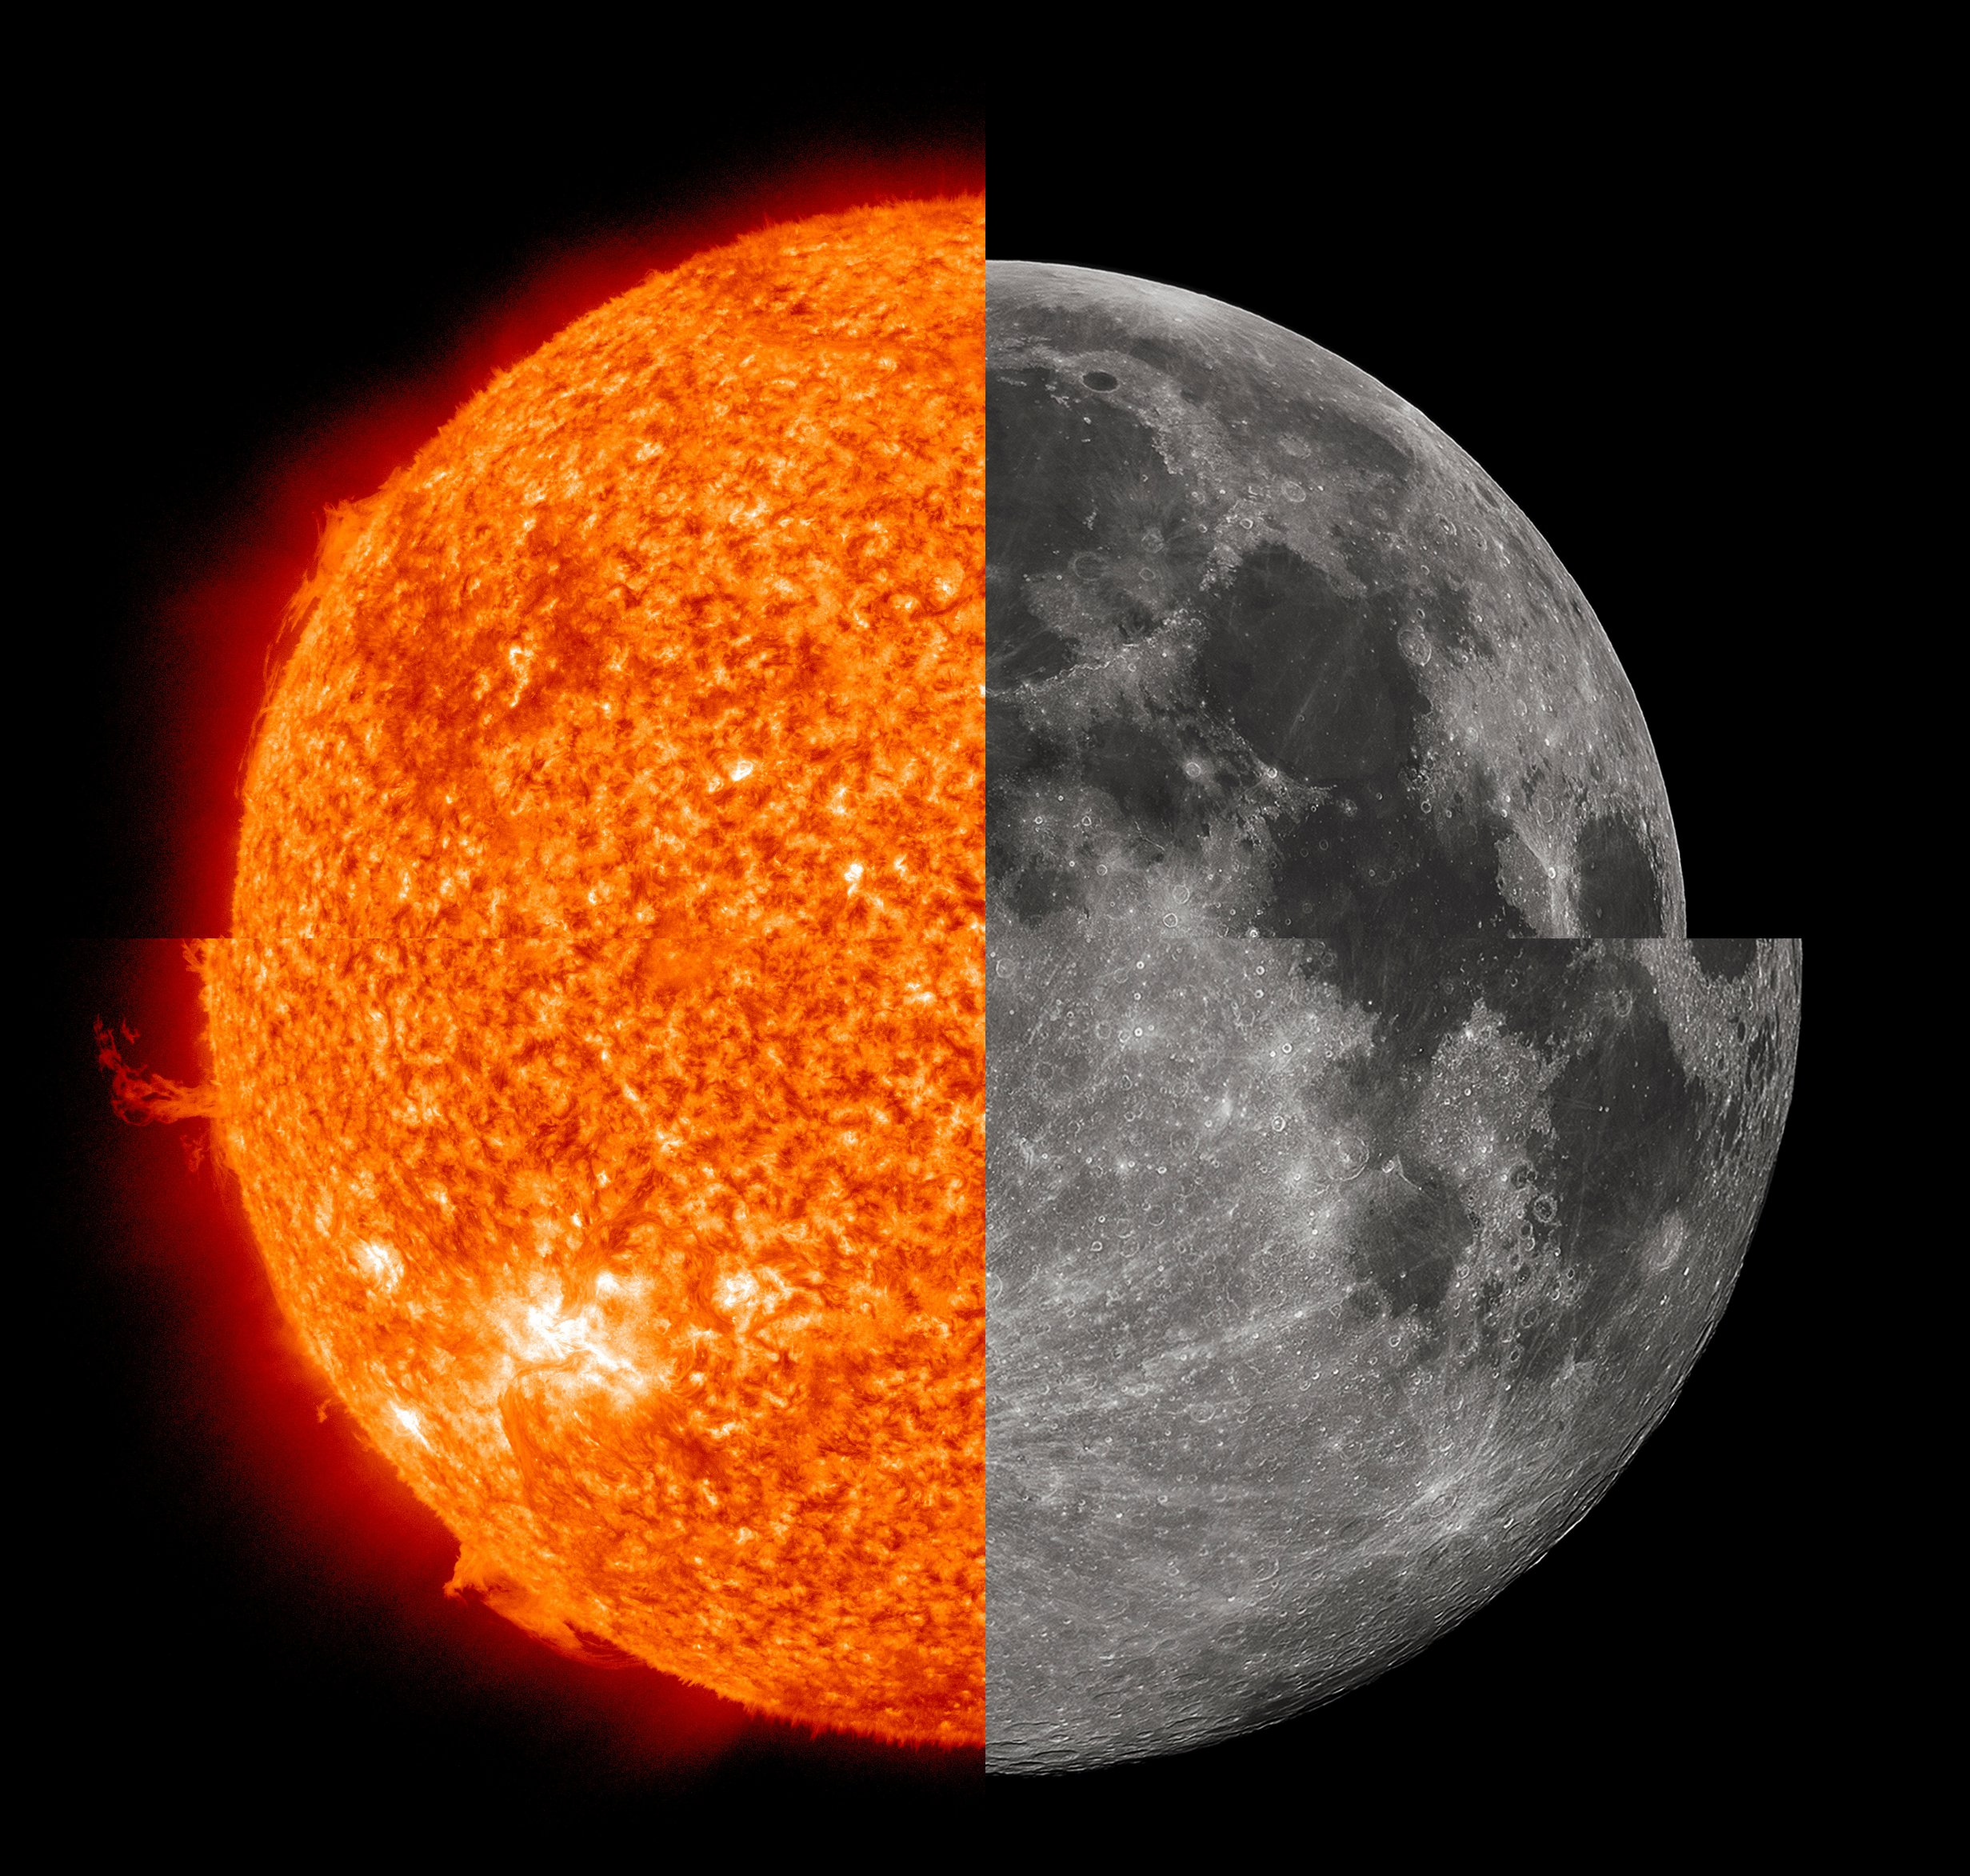 Apparent Sizes Of The Sun And Moon Depicted To Scale At